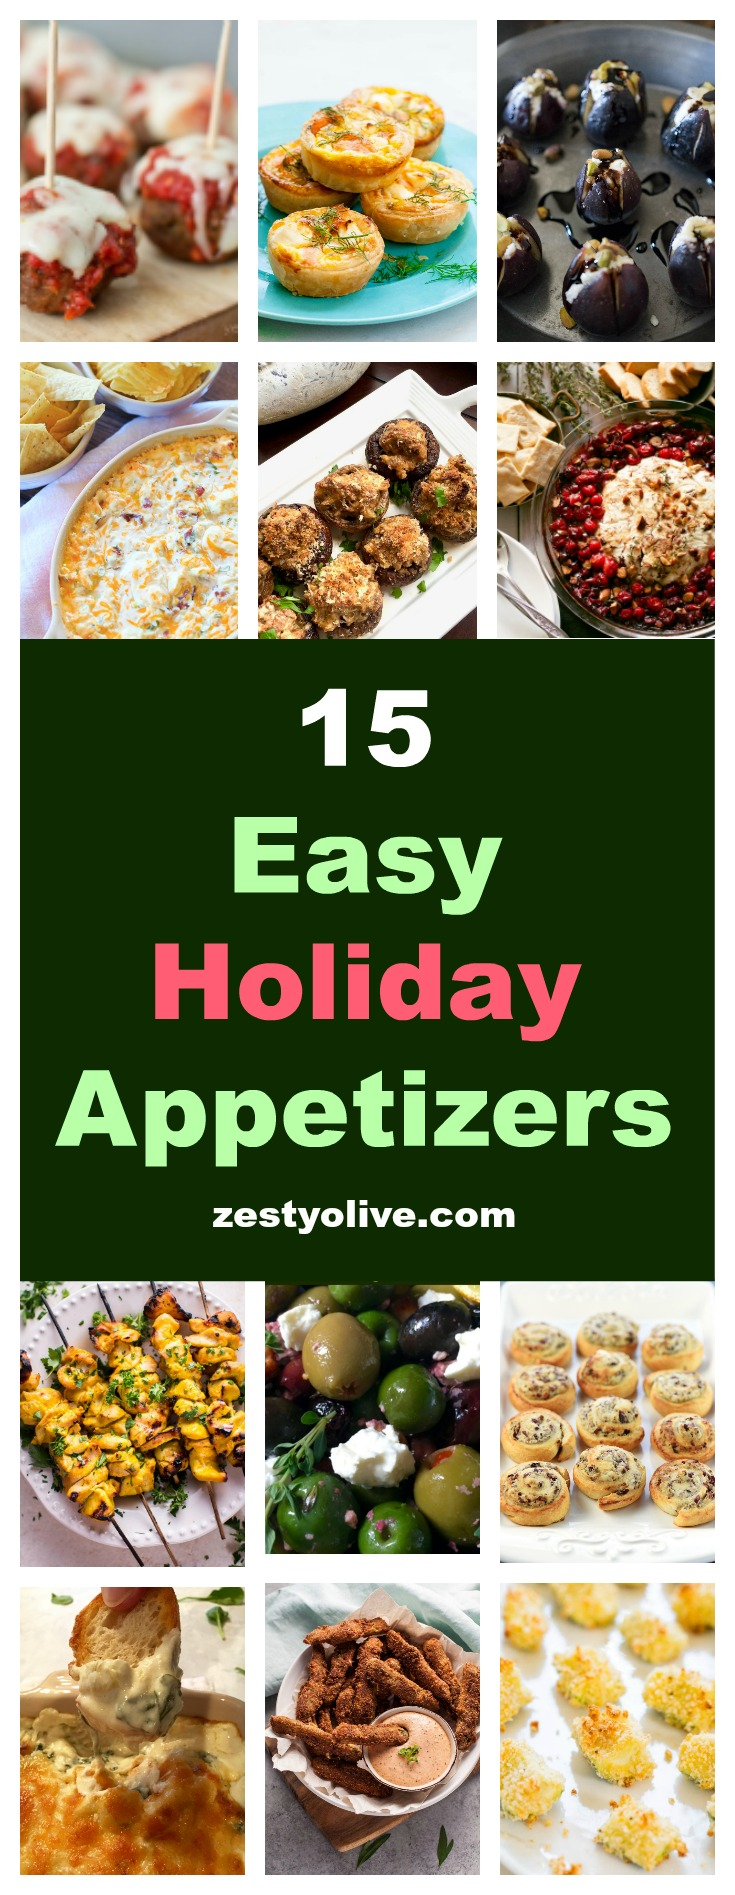 Spend less time in the kitchen and more time entertaining your guests with these 15 Easy Holiday Appetizers.